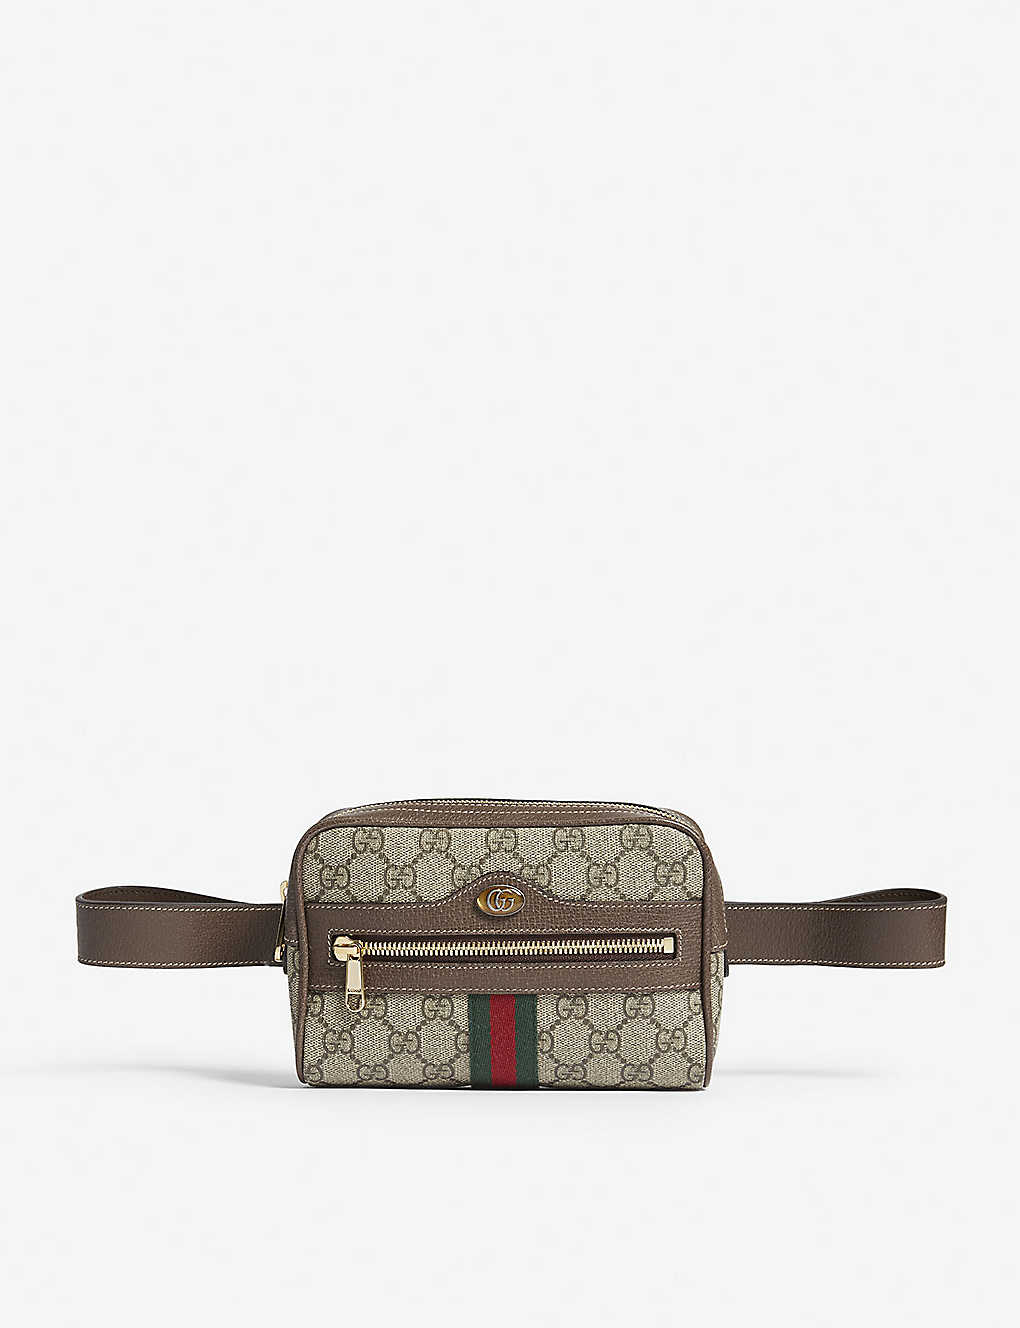 50579b8ae9e0 GUCCI - GG Supreme belt bag | Selfridges.com